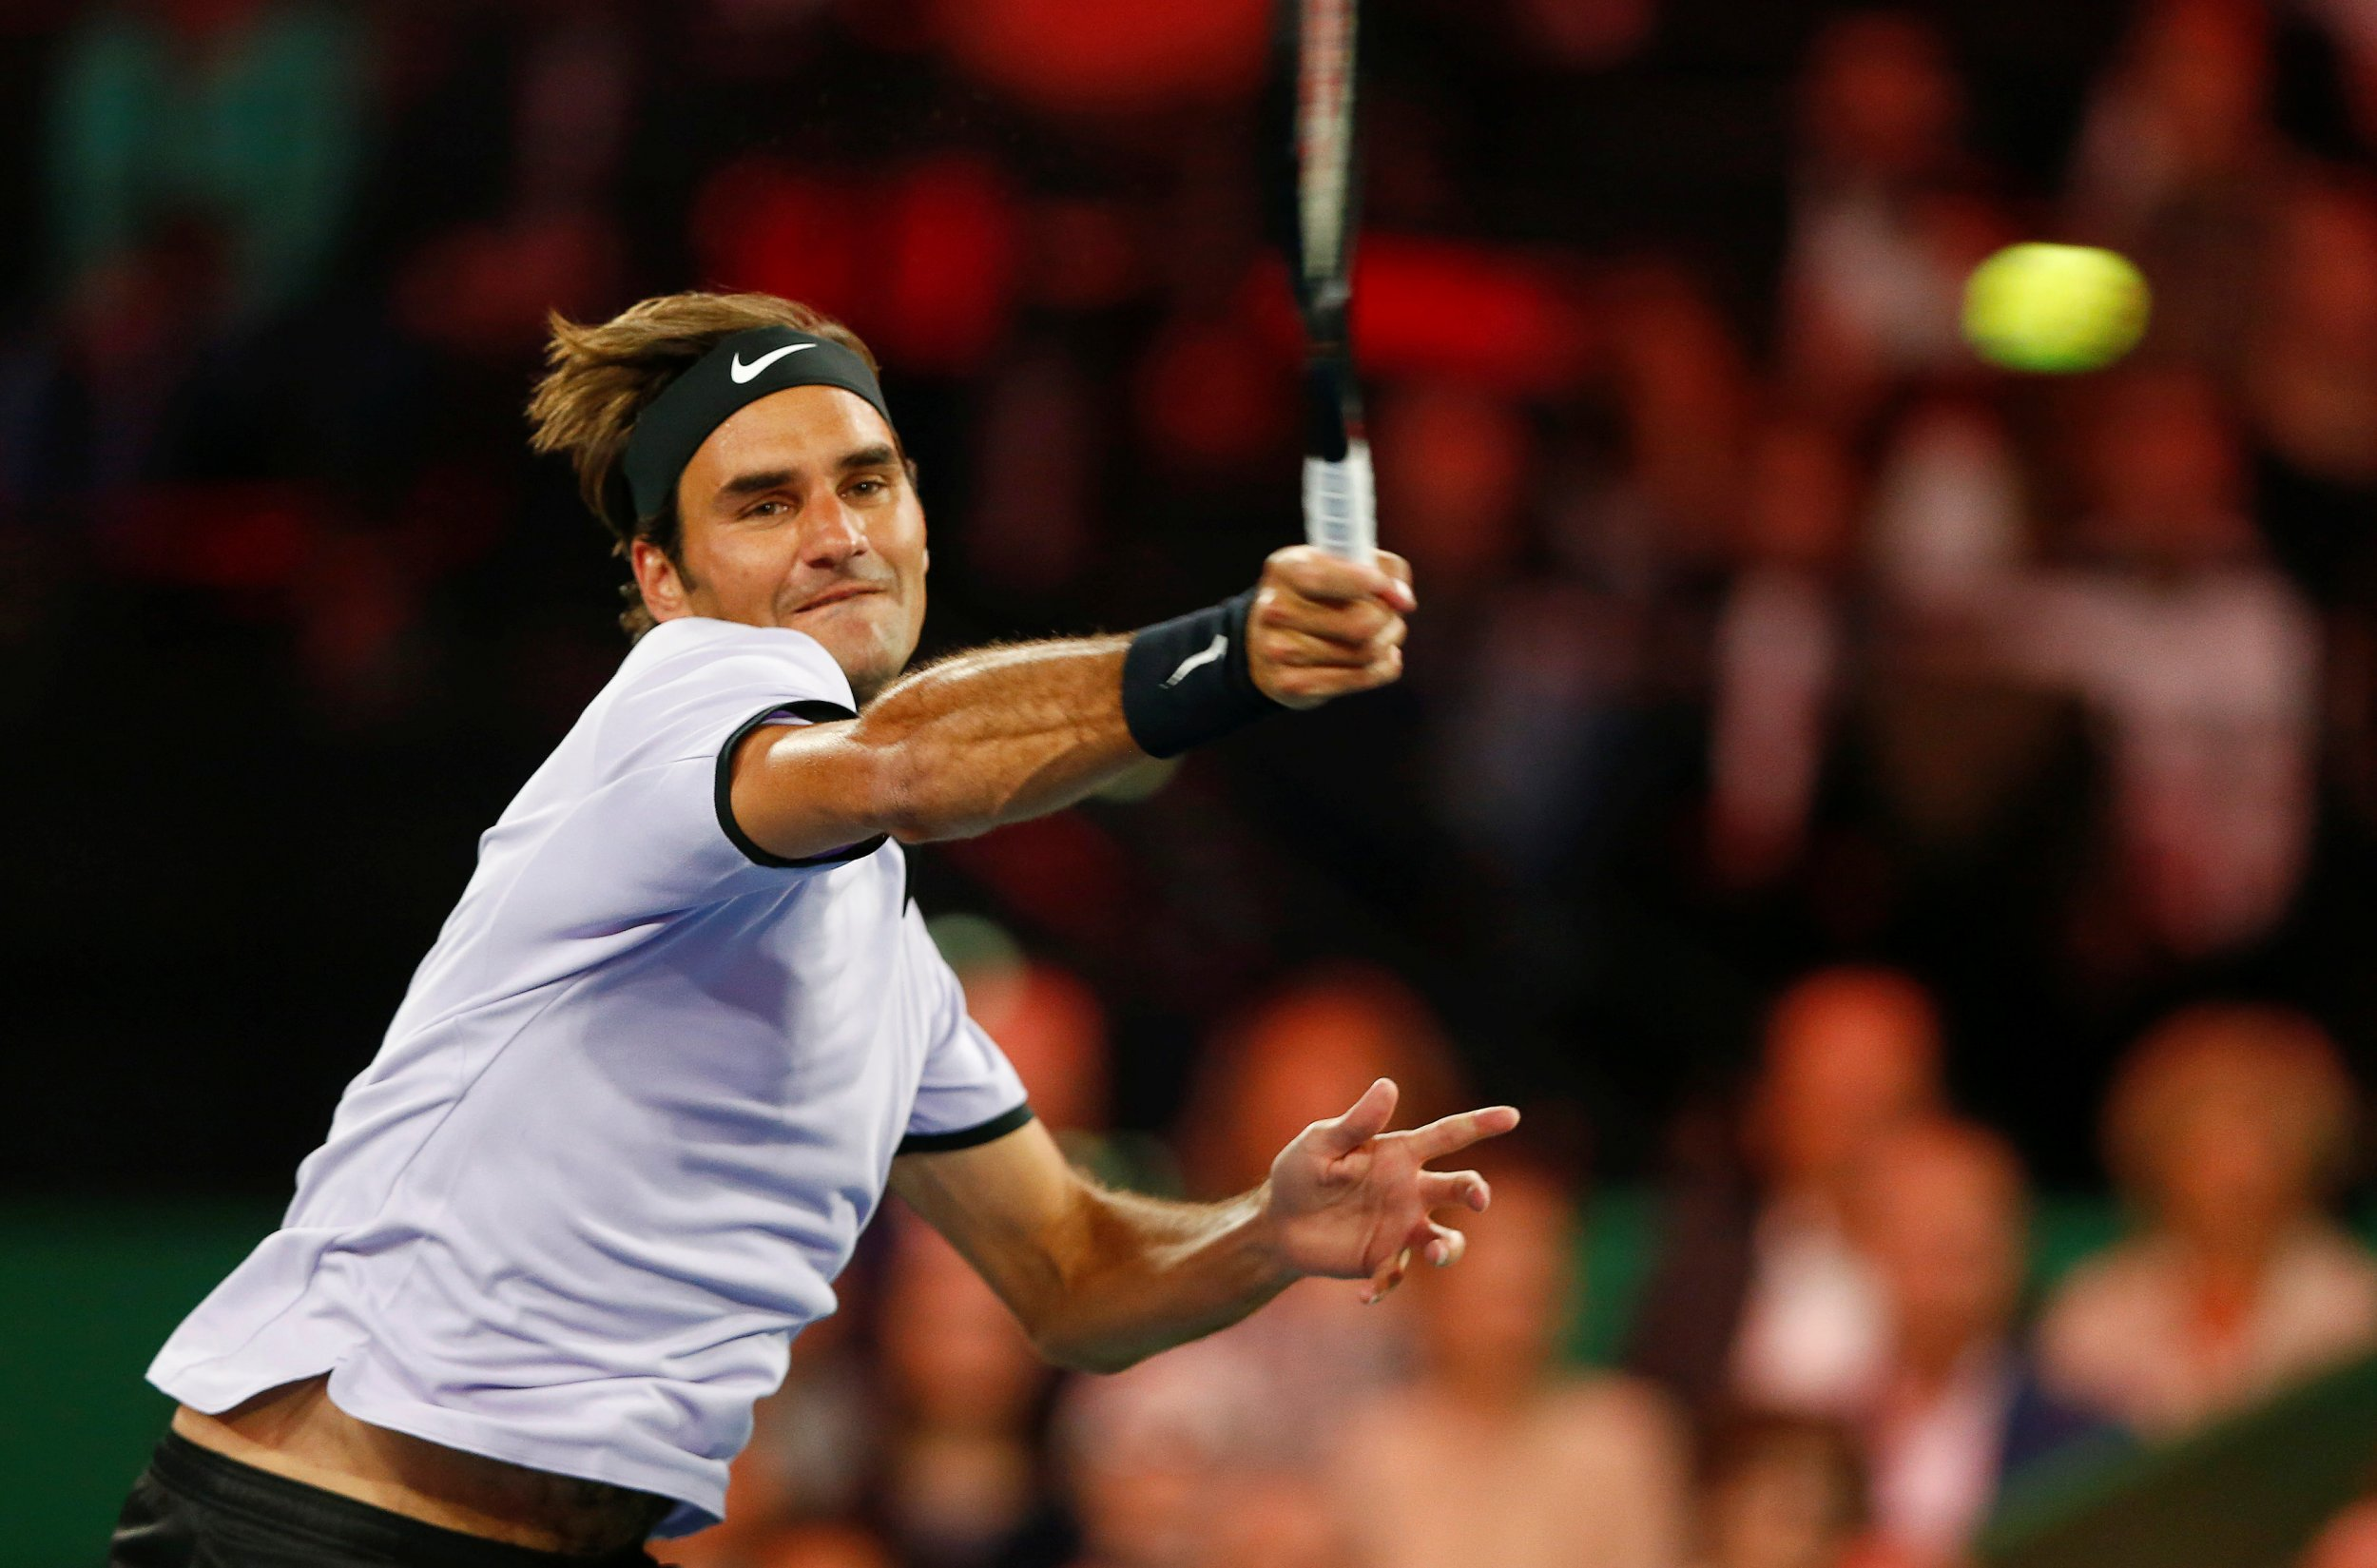 Roger Federer Makes Shock Withdrawal from French Open to Focus on